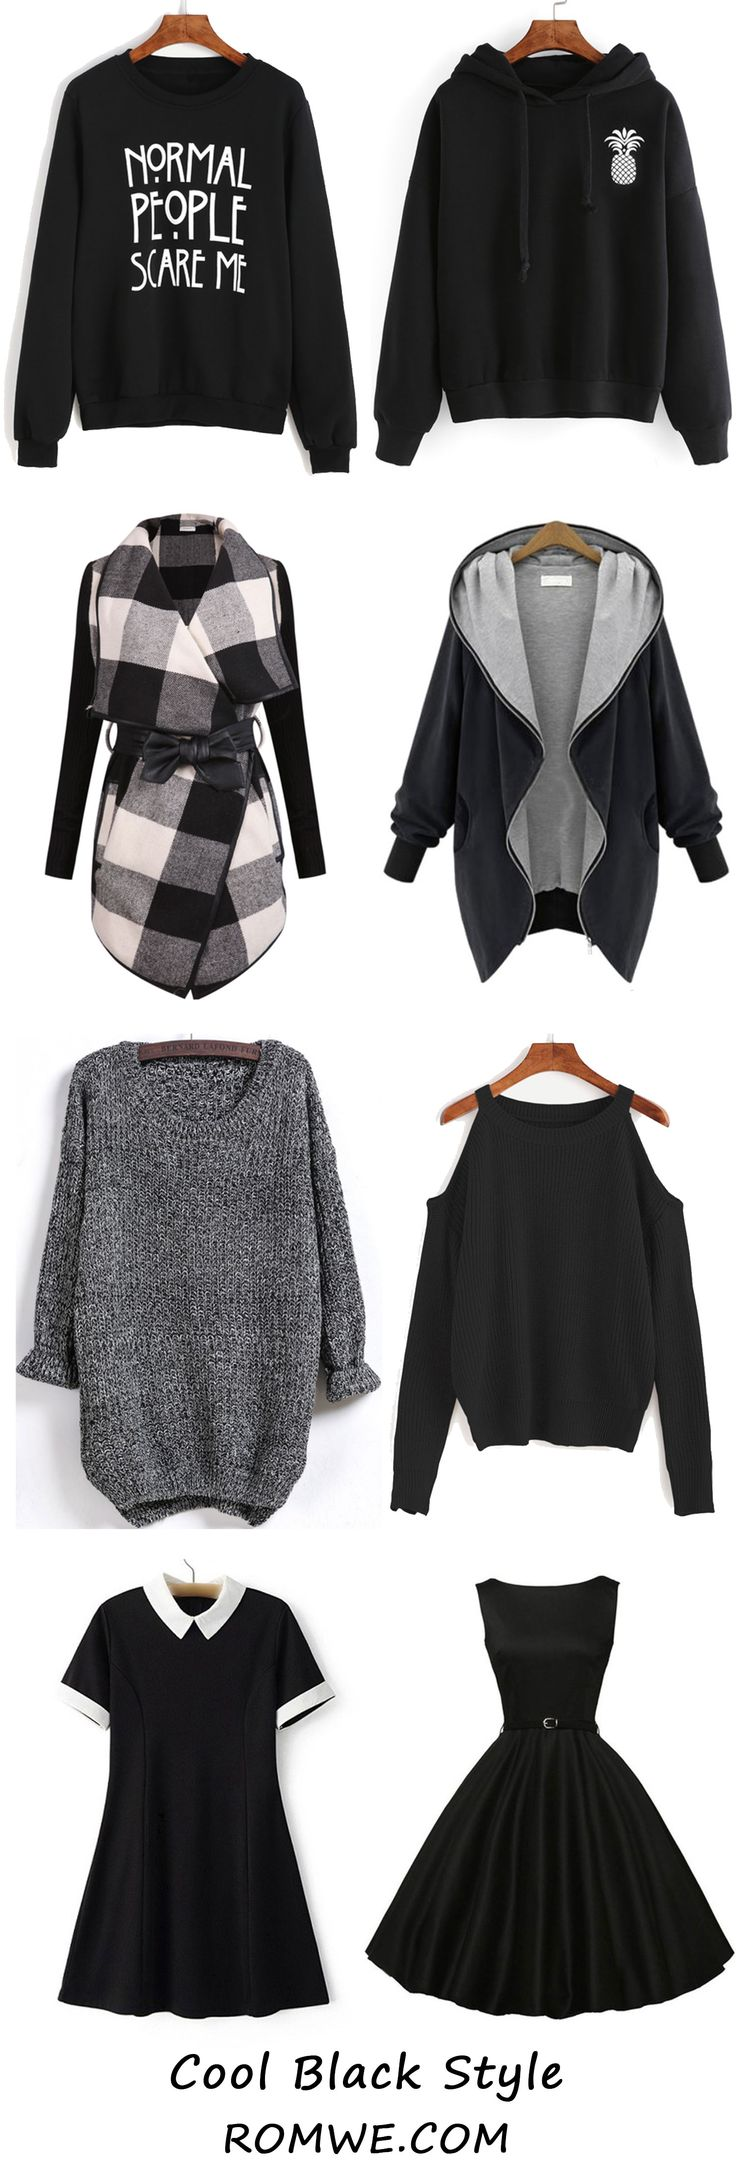 Cool Black - Sweatshirts, Sweaters, Dresses and Coats from romwe.com